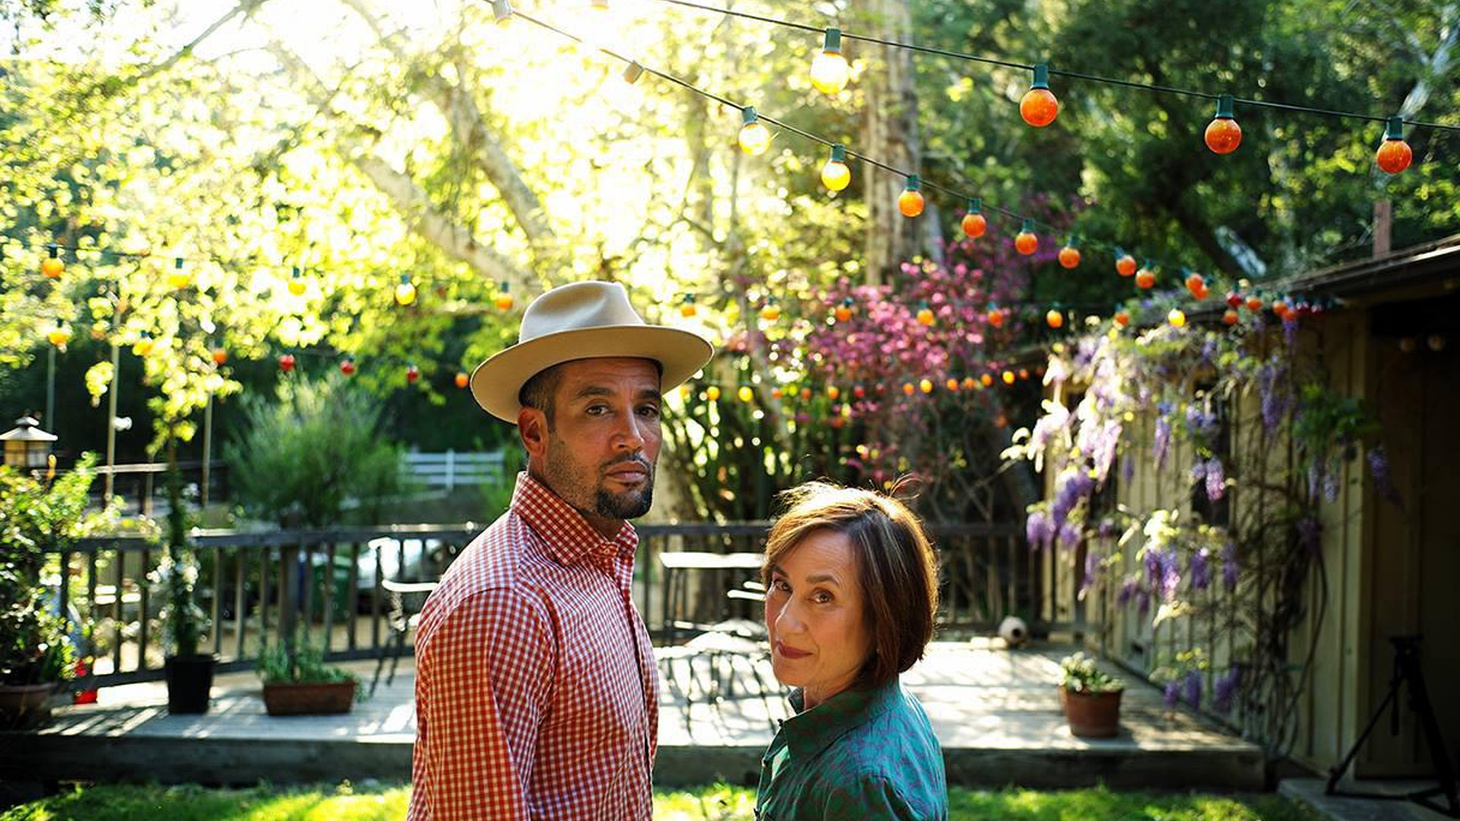 Ben Harper collaborates with his mother Ellen for a new recording exploring the deeply personal relationship between mother and child, as well as family life.